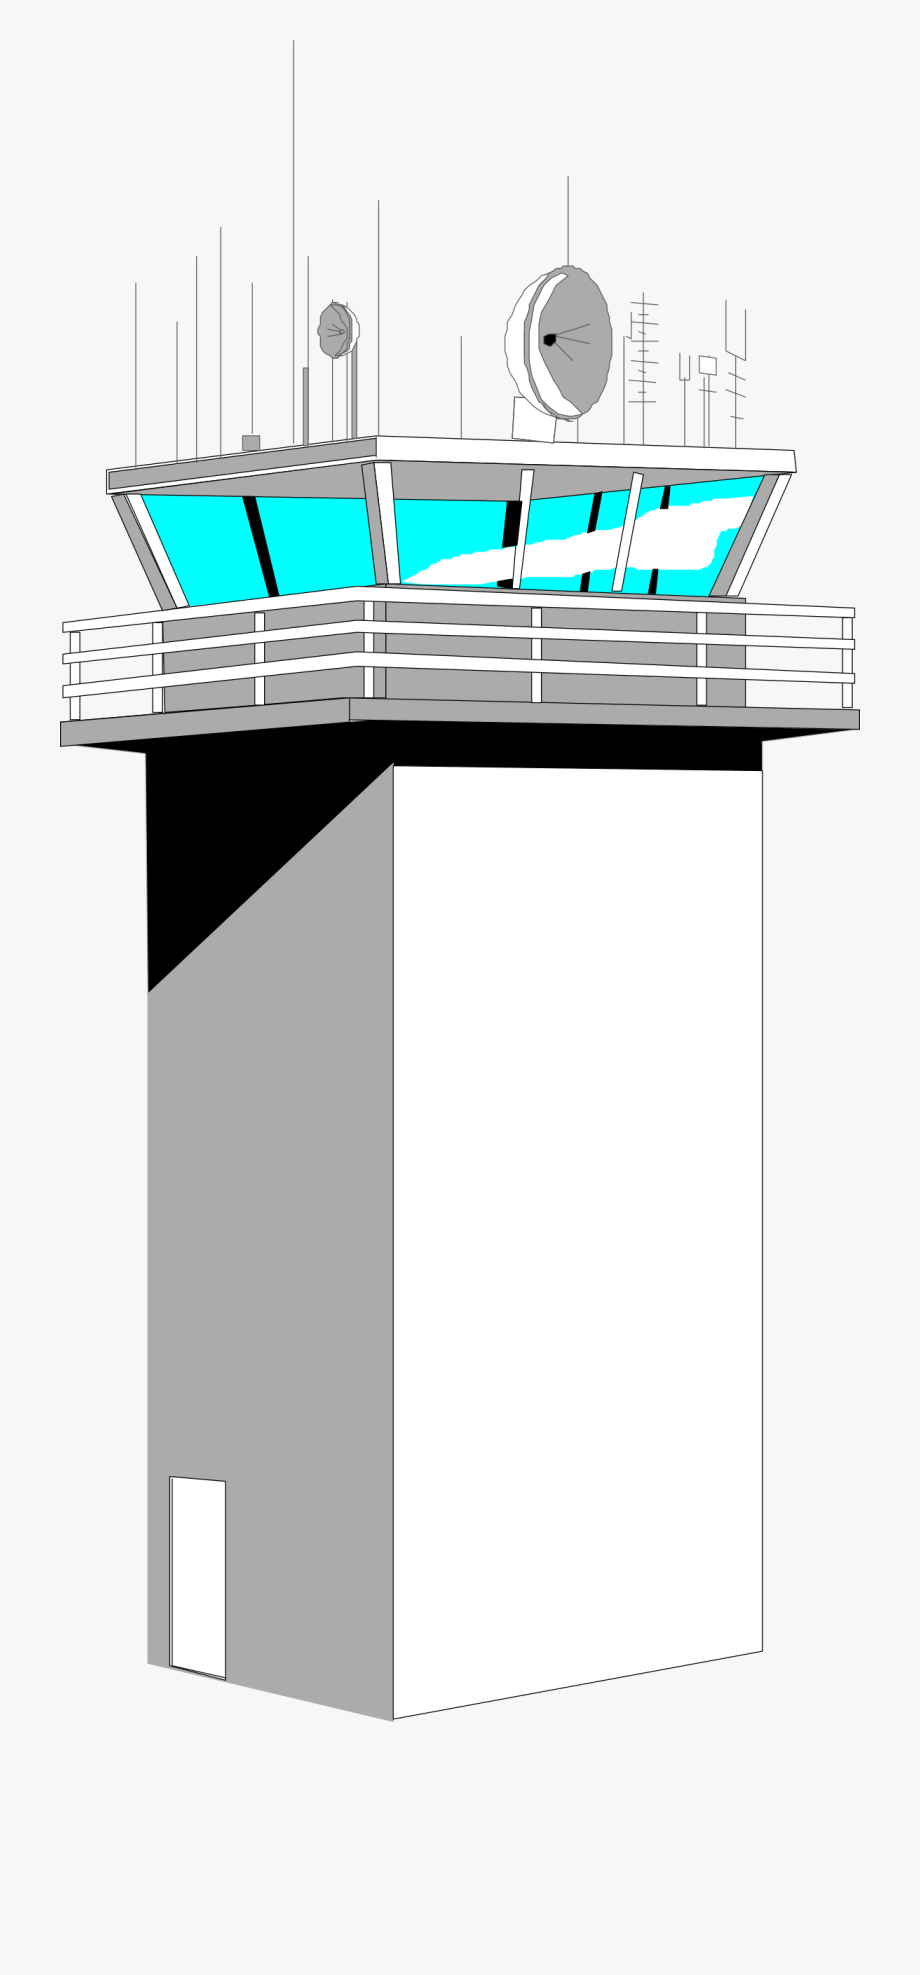 Airport tower clipart royalty free Airport Control Big Image Png Ⓒ - Air Traffic Control Tower Clipart ... royalty free